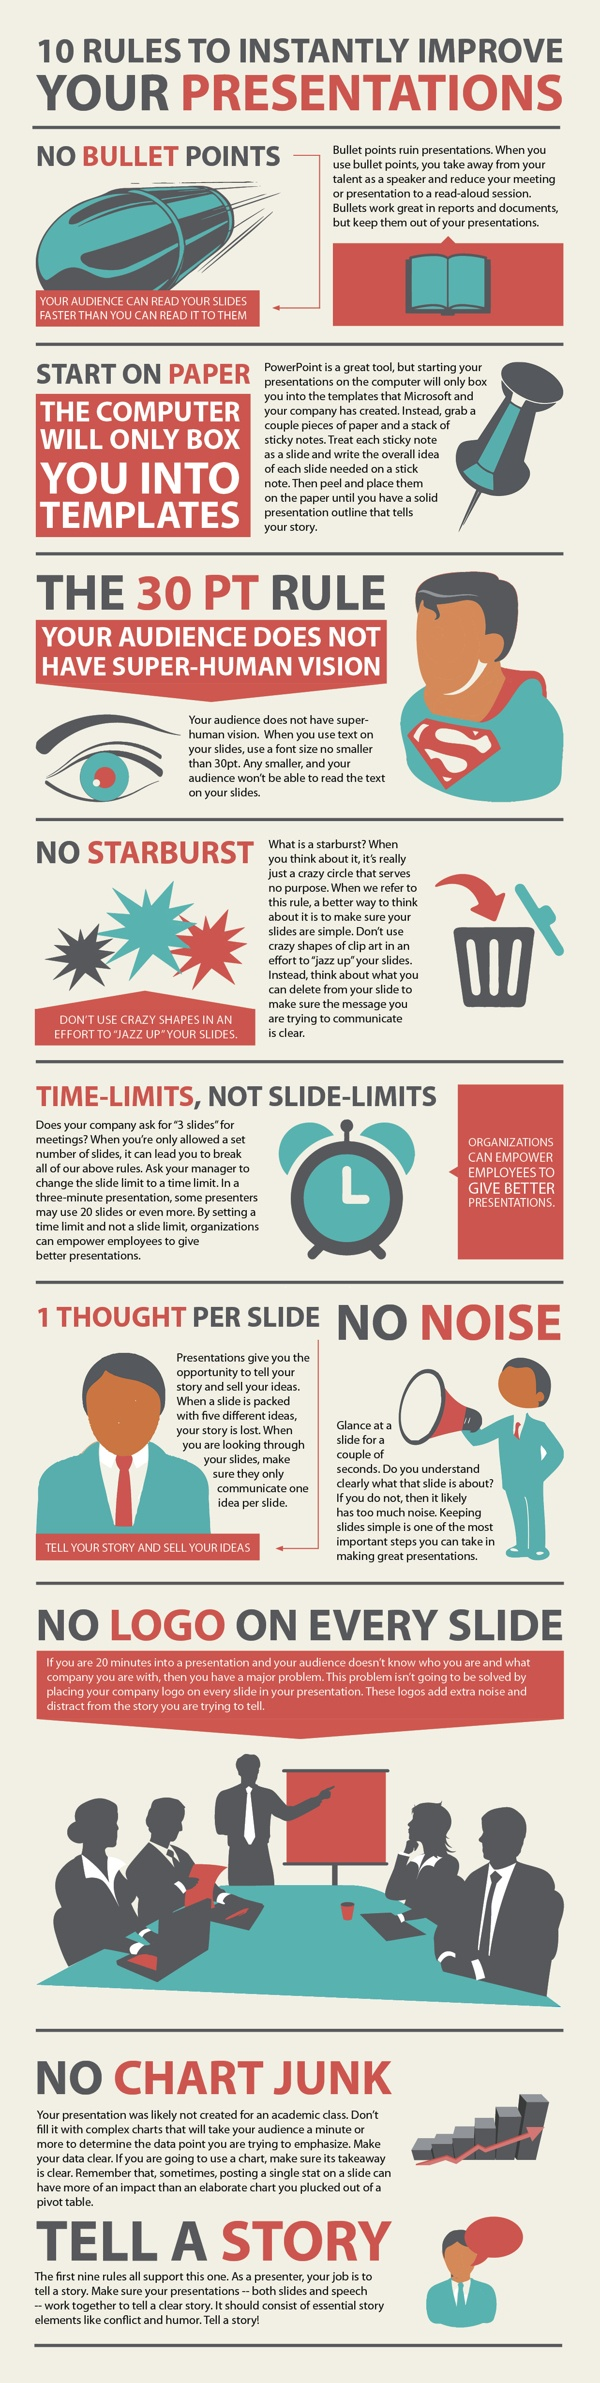 Ten Simple Rules for Making Good Oral Presentations